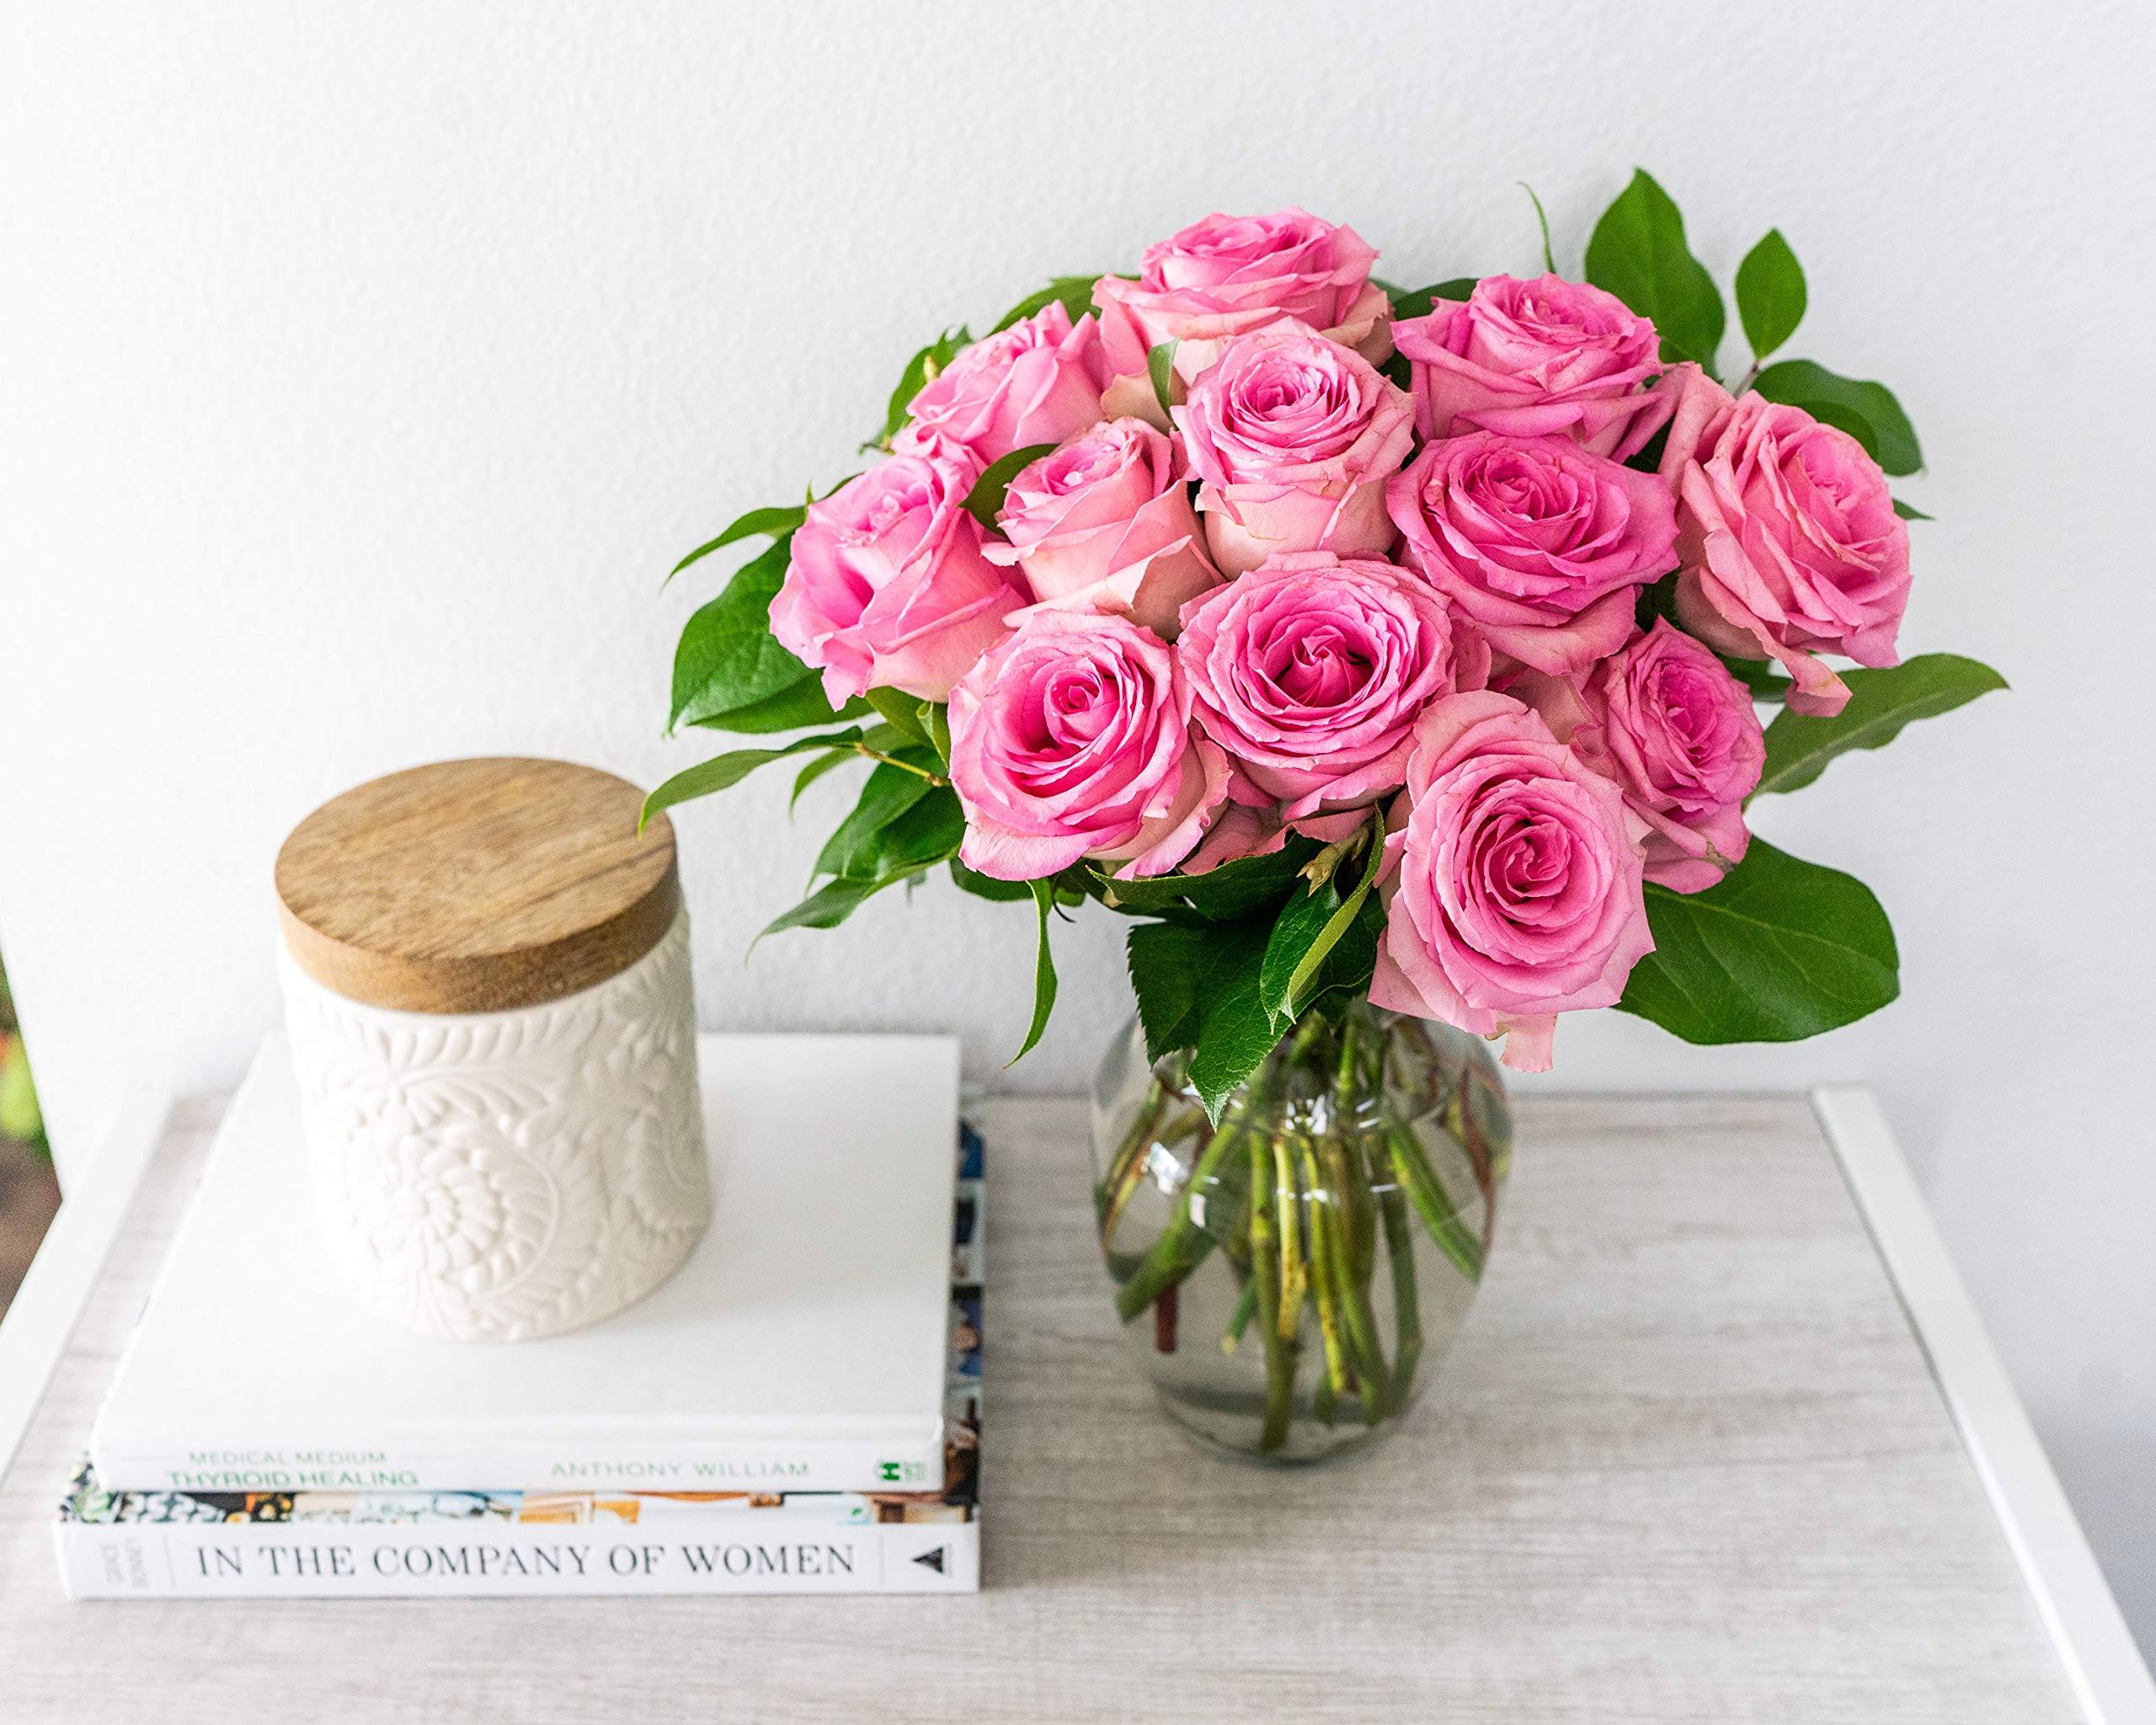 Flowers - One Dozen Light Pink Roses (Free Vase Included) by From You Flowers (Image #1)